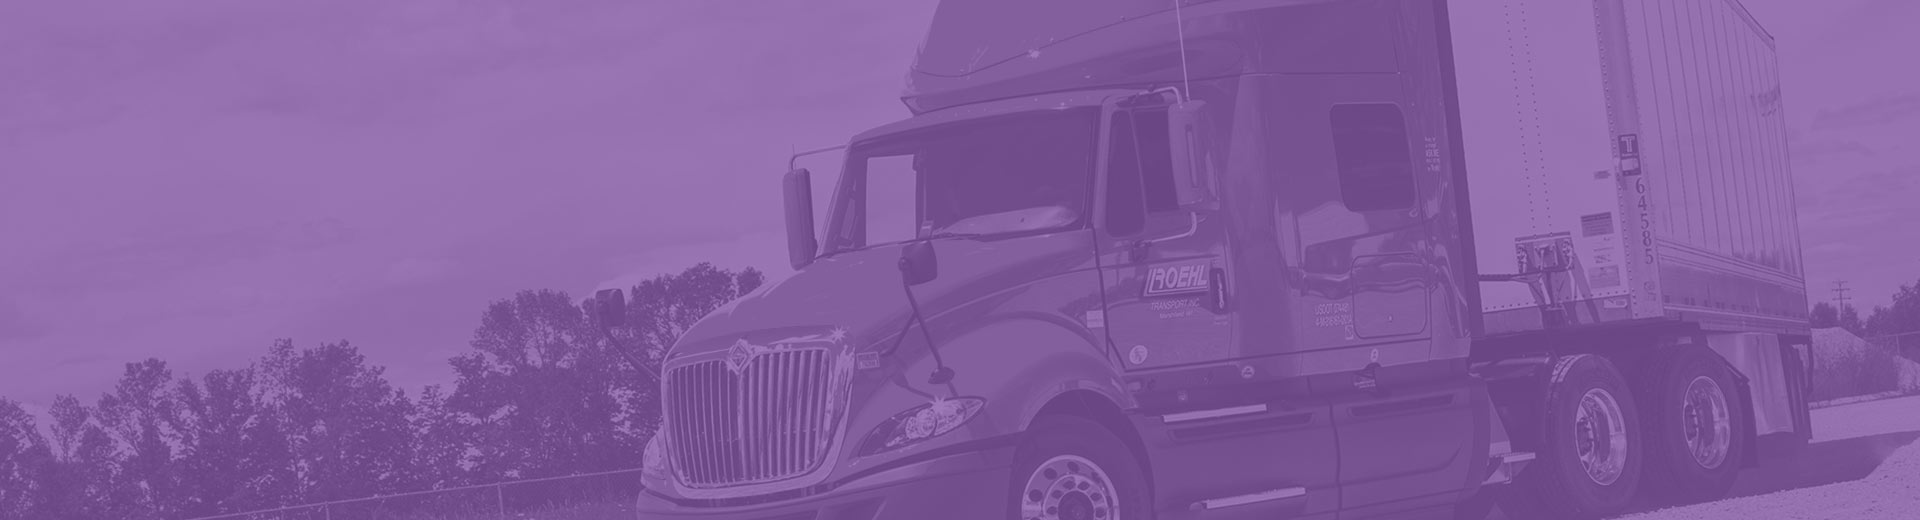 Roehl's on the job training provides prepares you for a career as a professional truck driver.